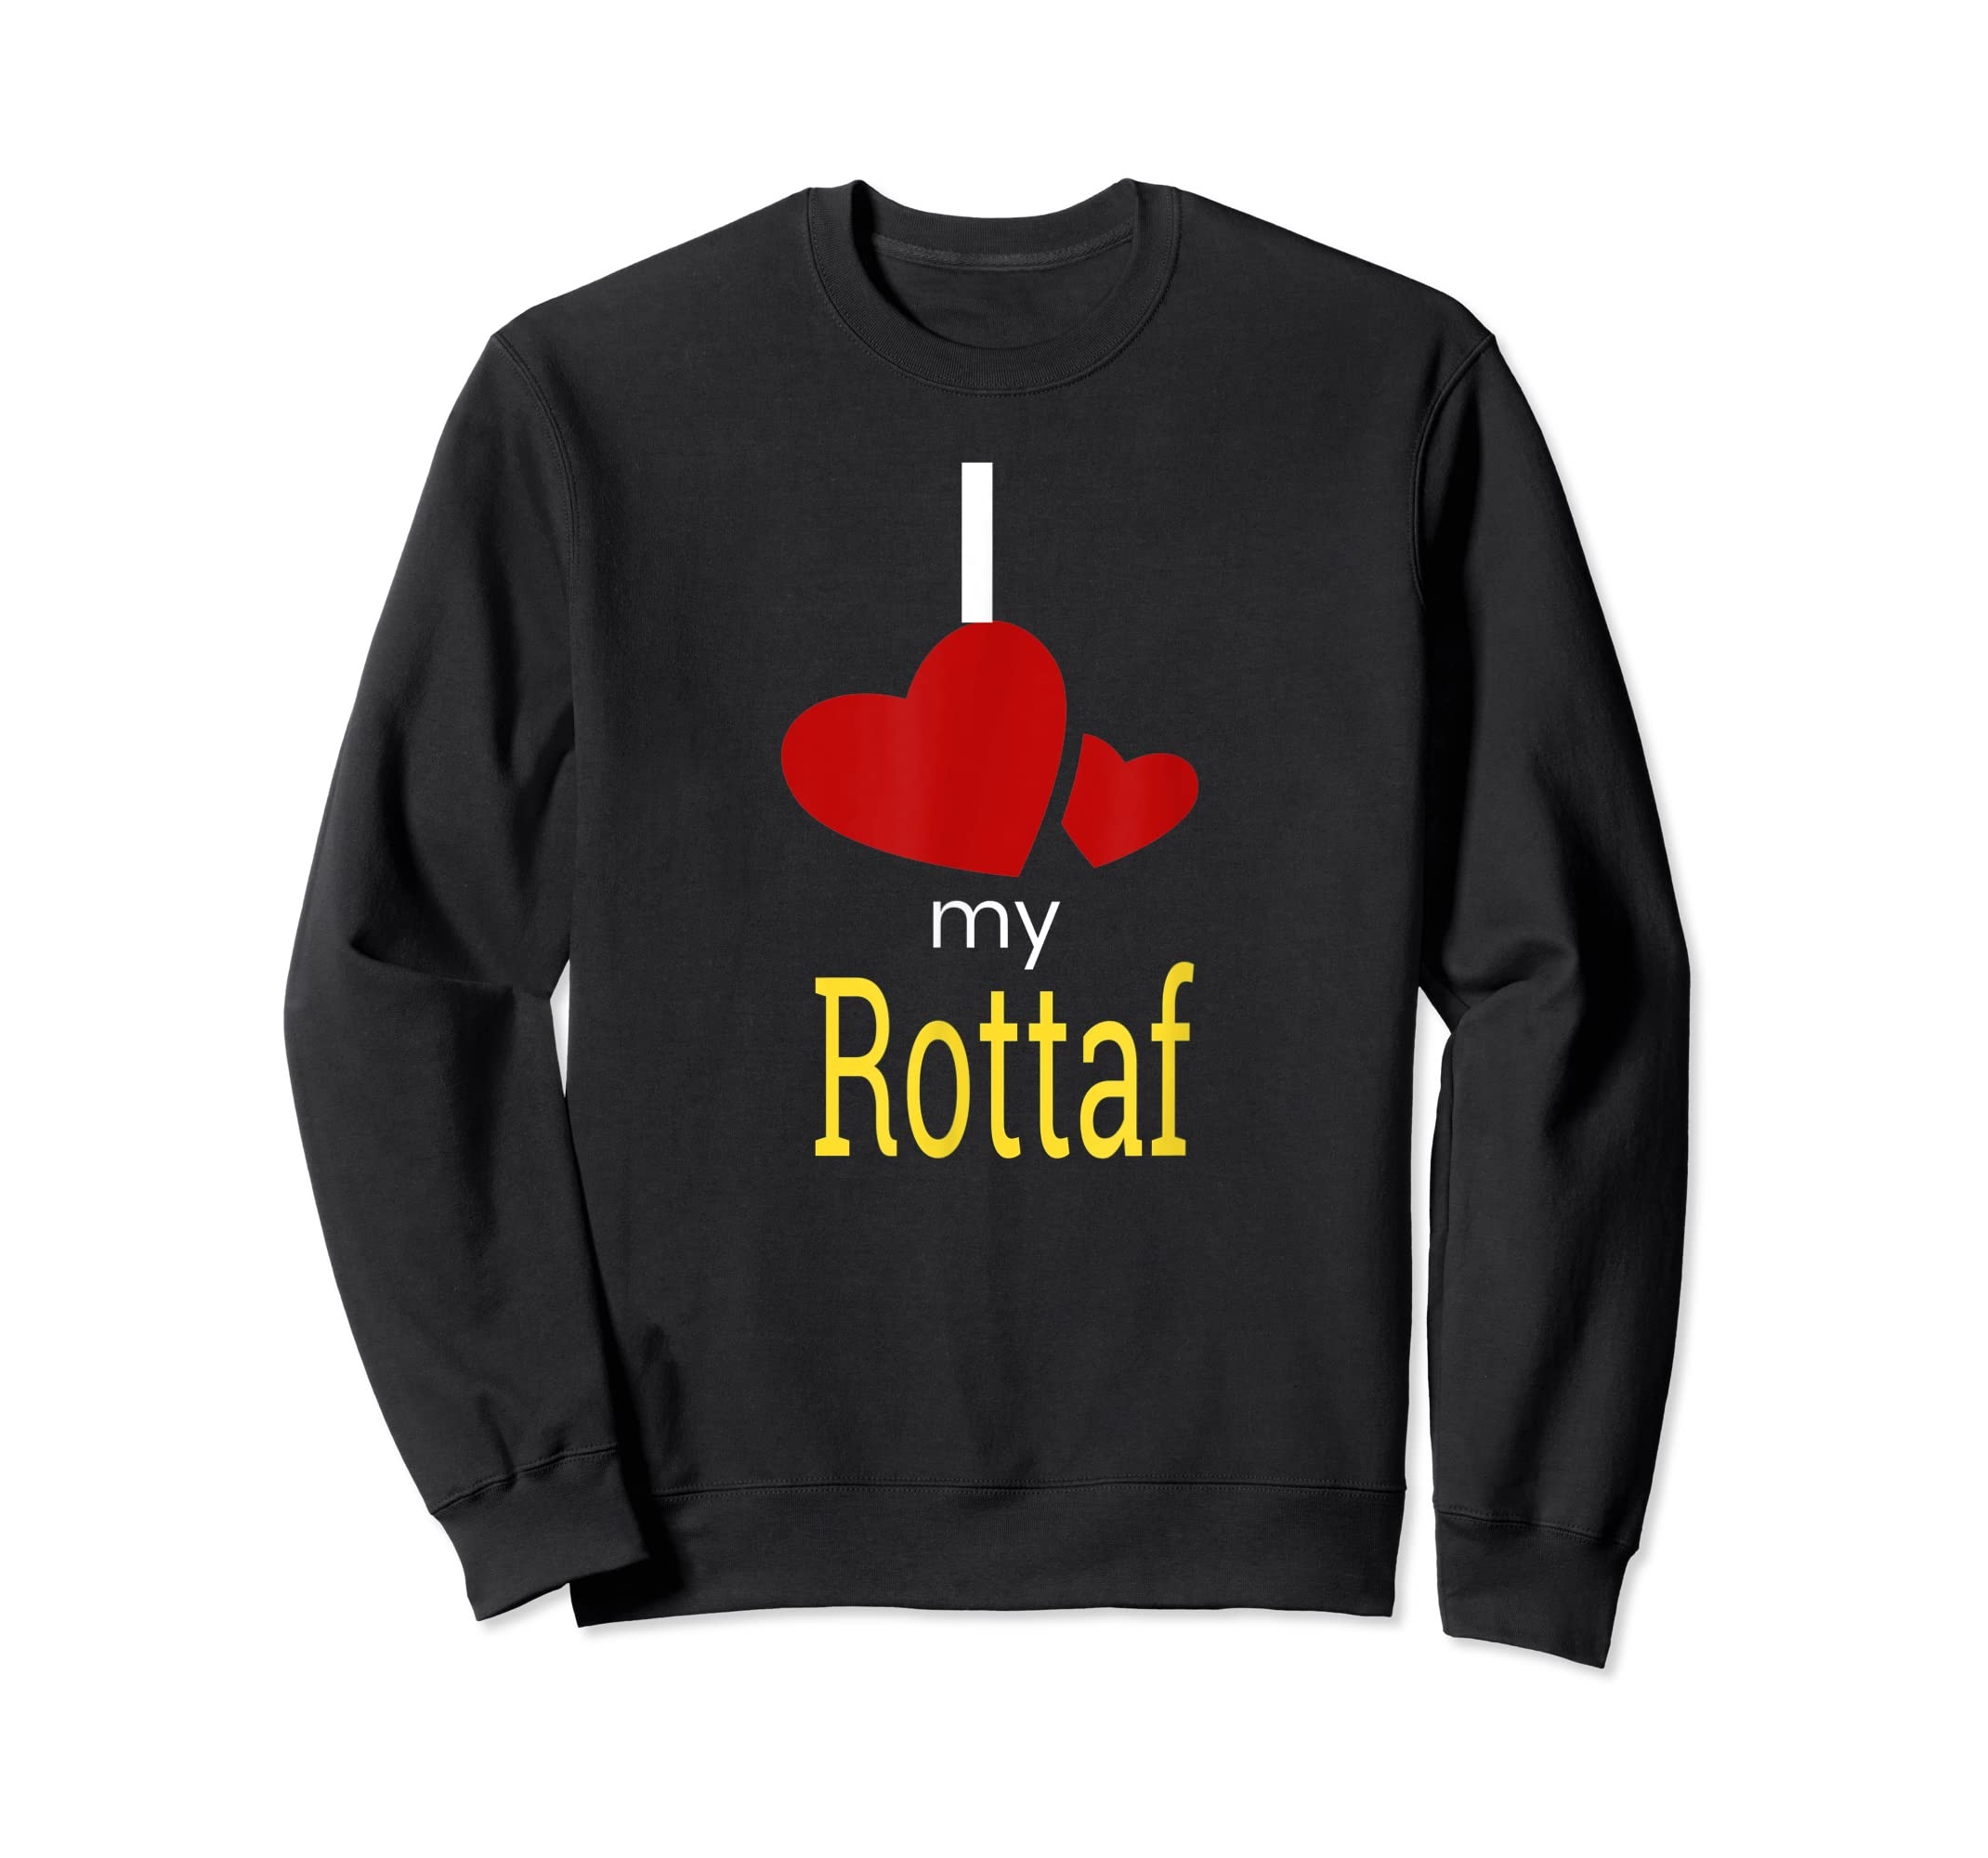 Rottaf Dog Shirt Love Rottweiler + Afghan Hound =  T-Shirt-Sweatshirt-Black